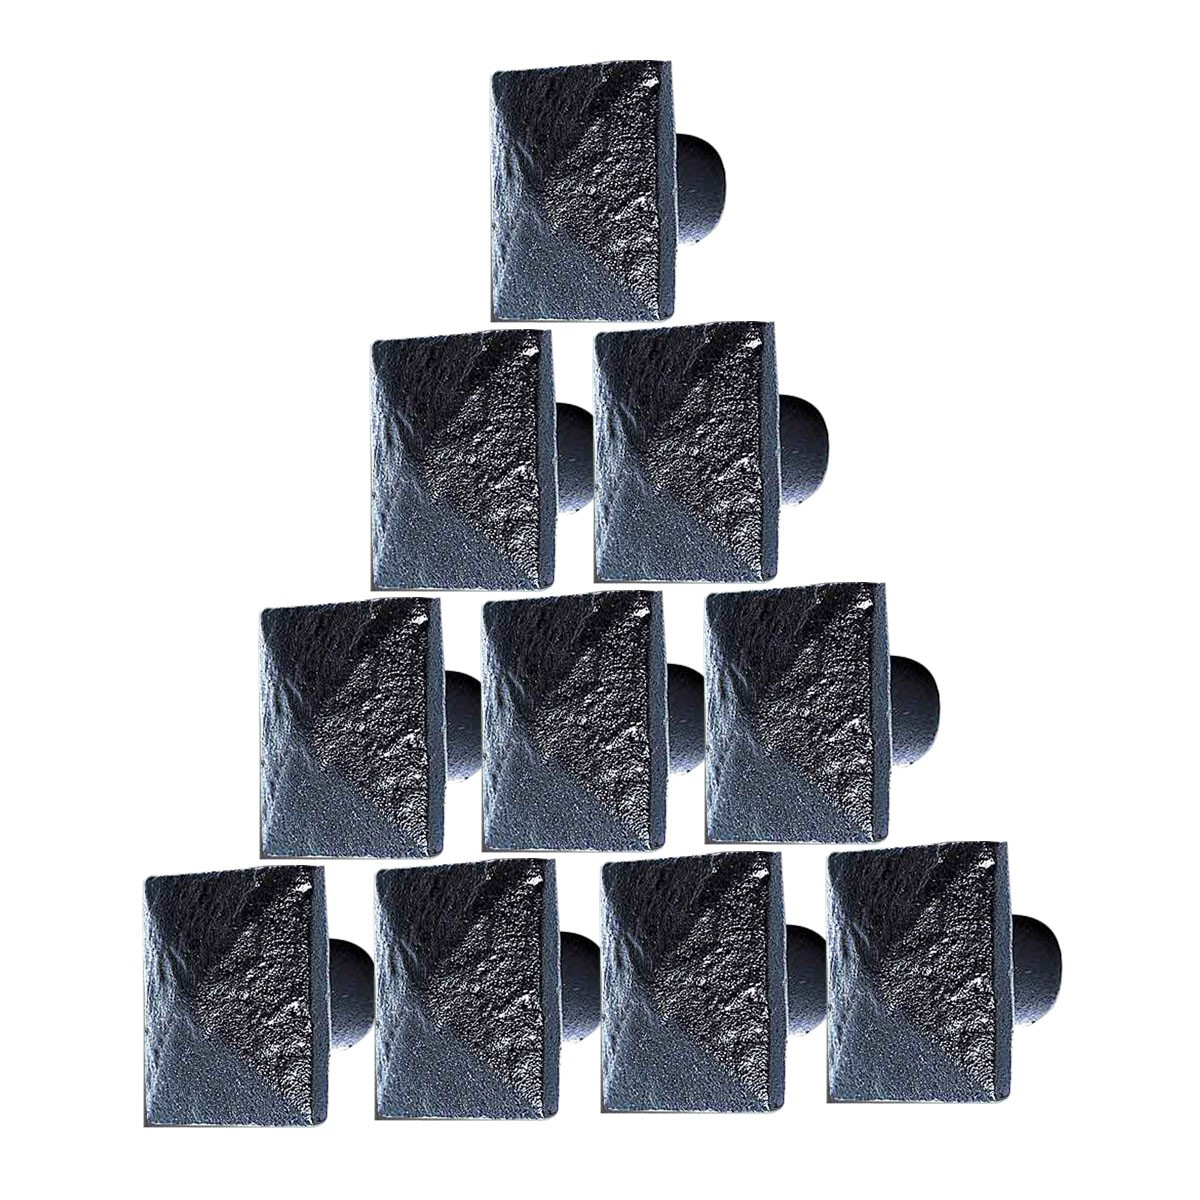 Wrought Iron Square Cabinet Knobs 1 Inch Set of 10